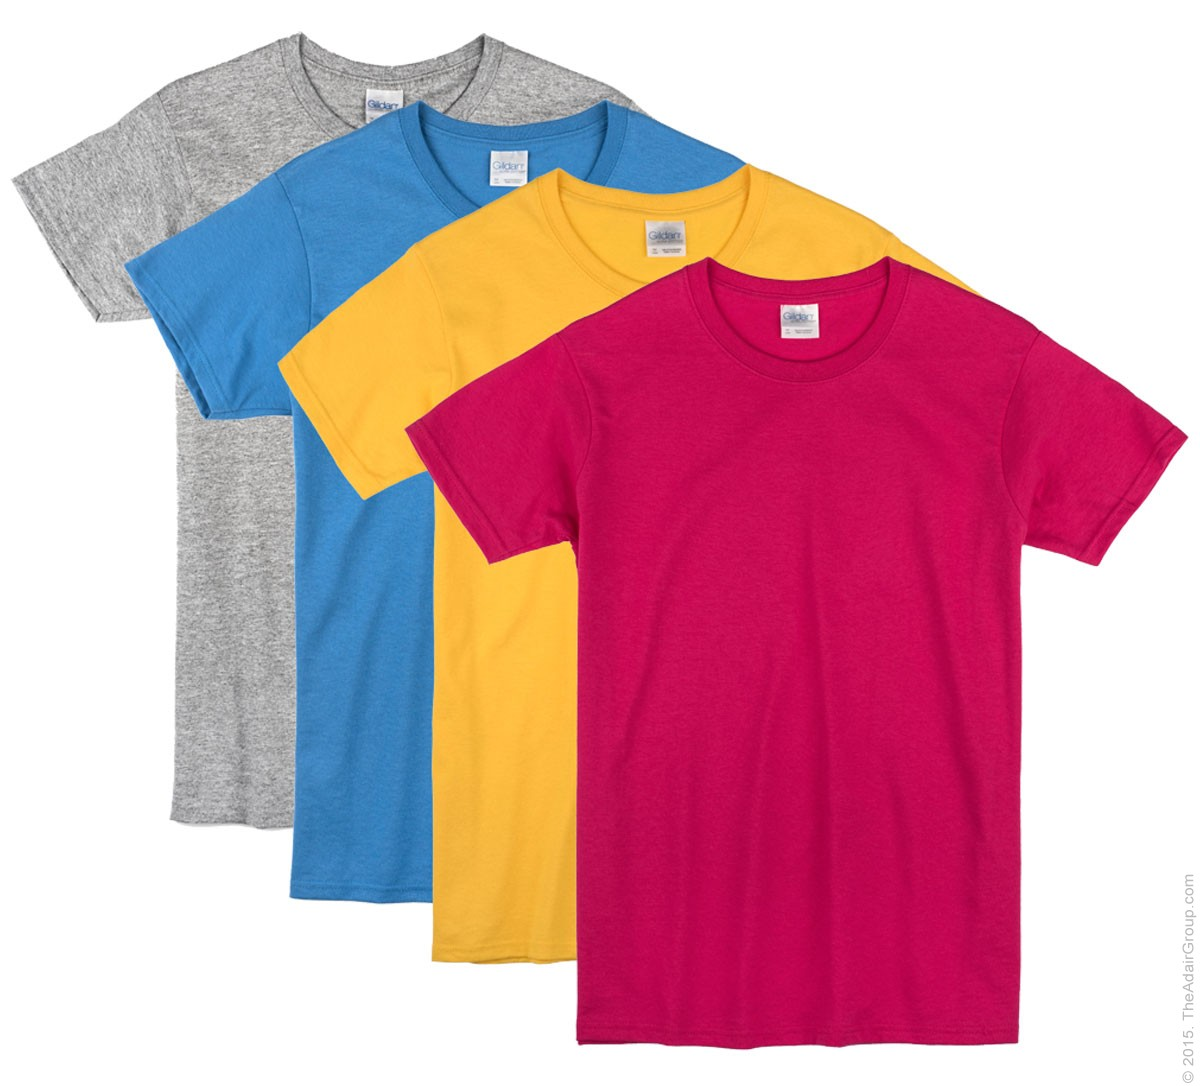 Wholesale Tee Shirts | Artee Shirt